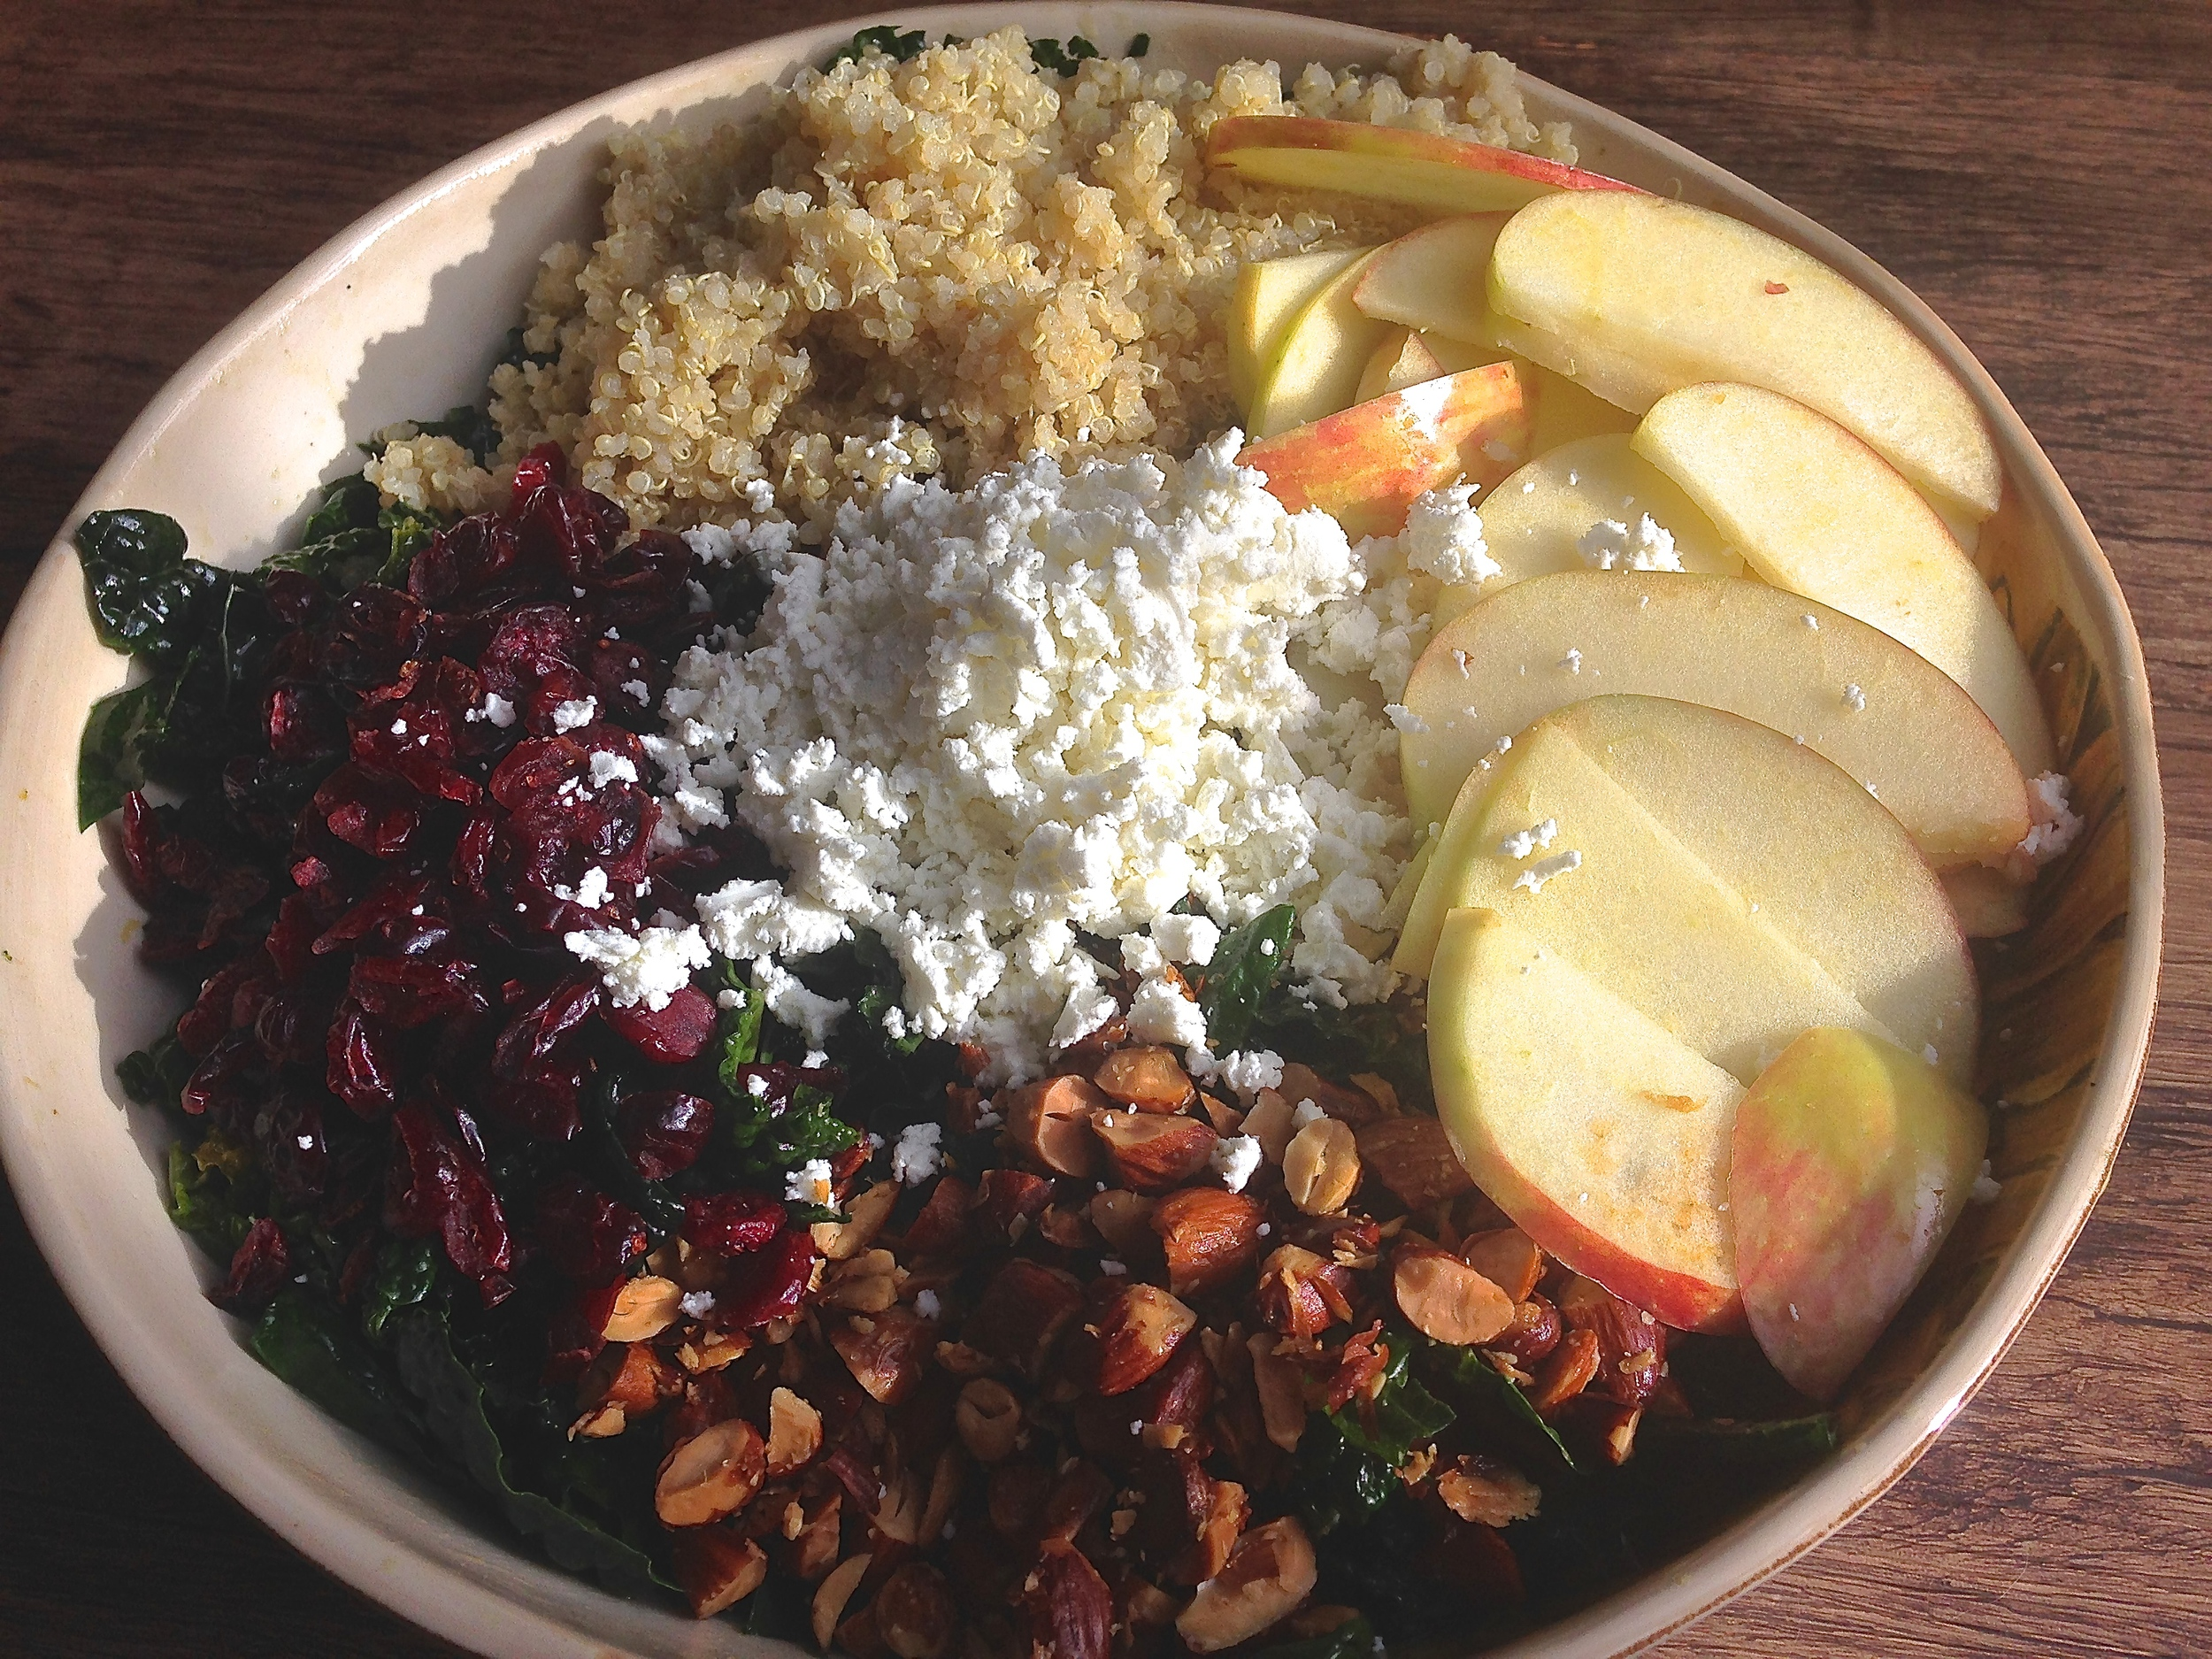 Autumn Kale Salad with Quinoa, Almonds, Cranberries, Apples & Goat Cheese in a Maple Vinaigrette | Kneading Home